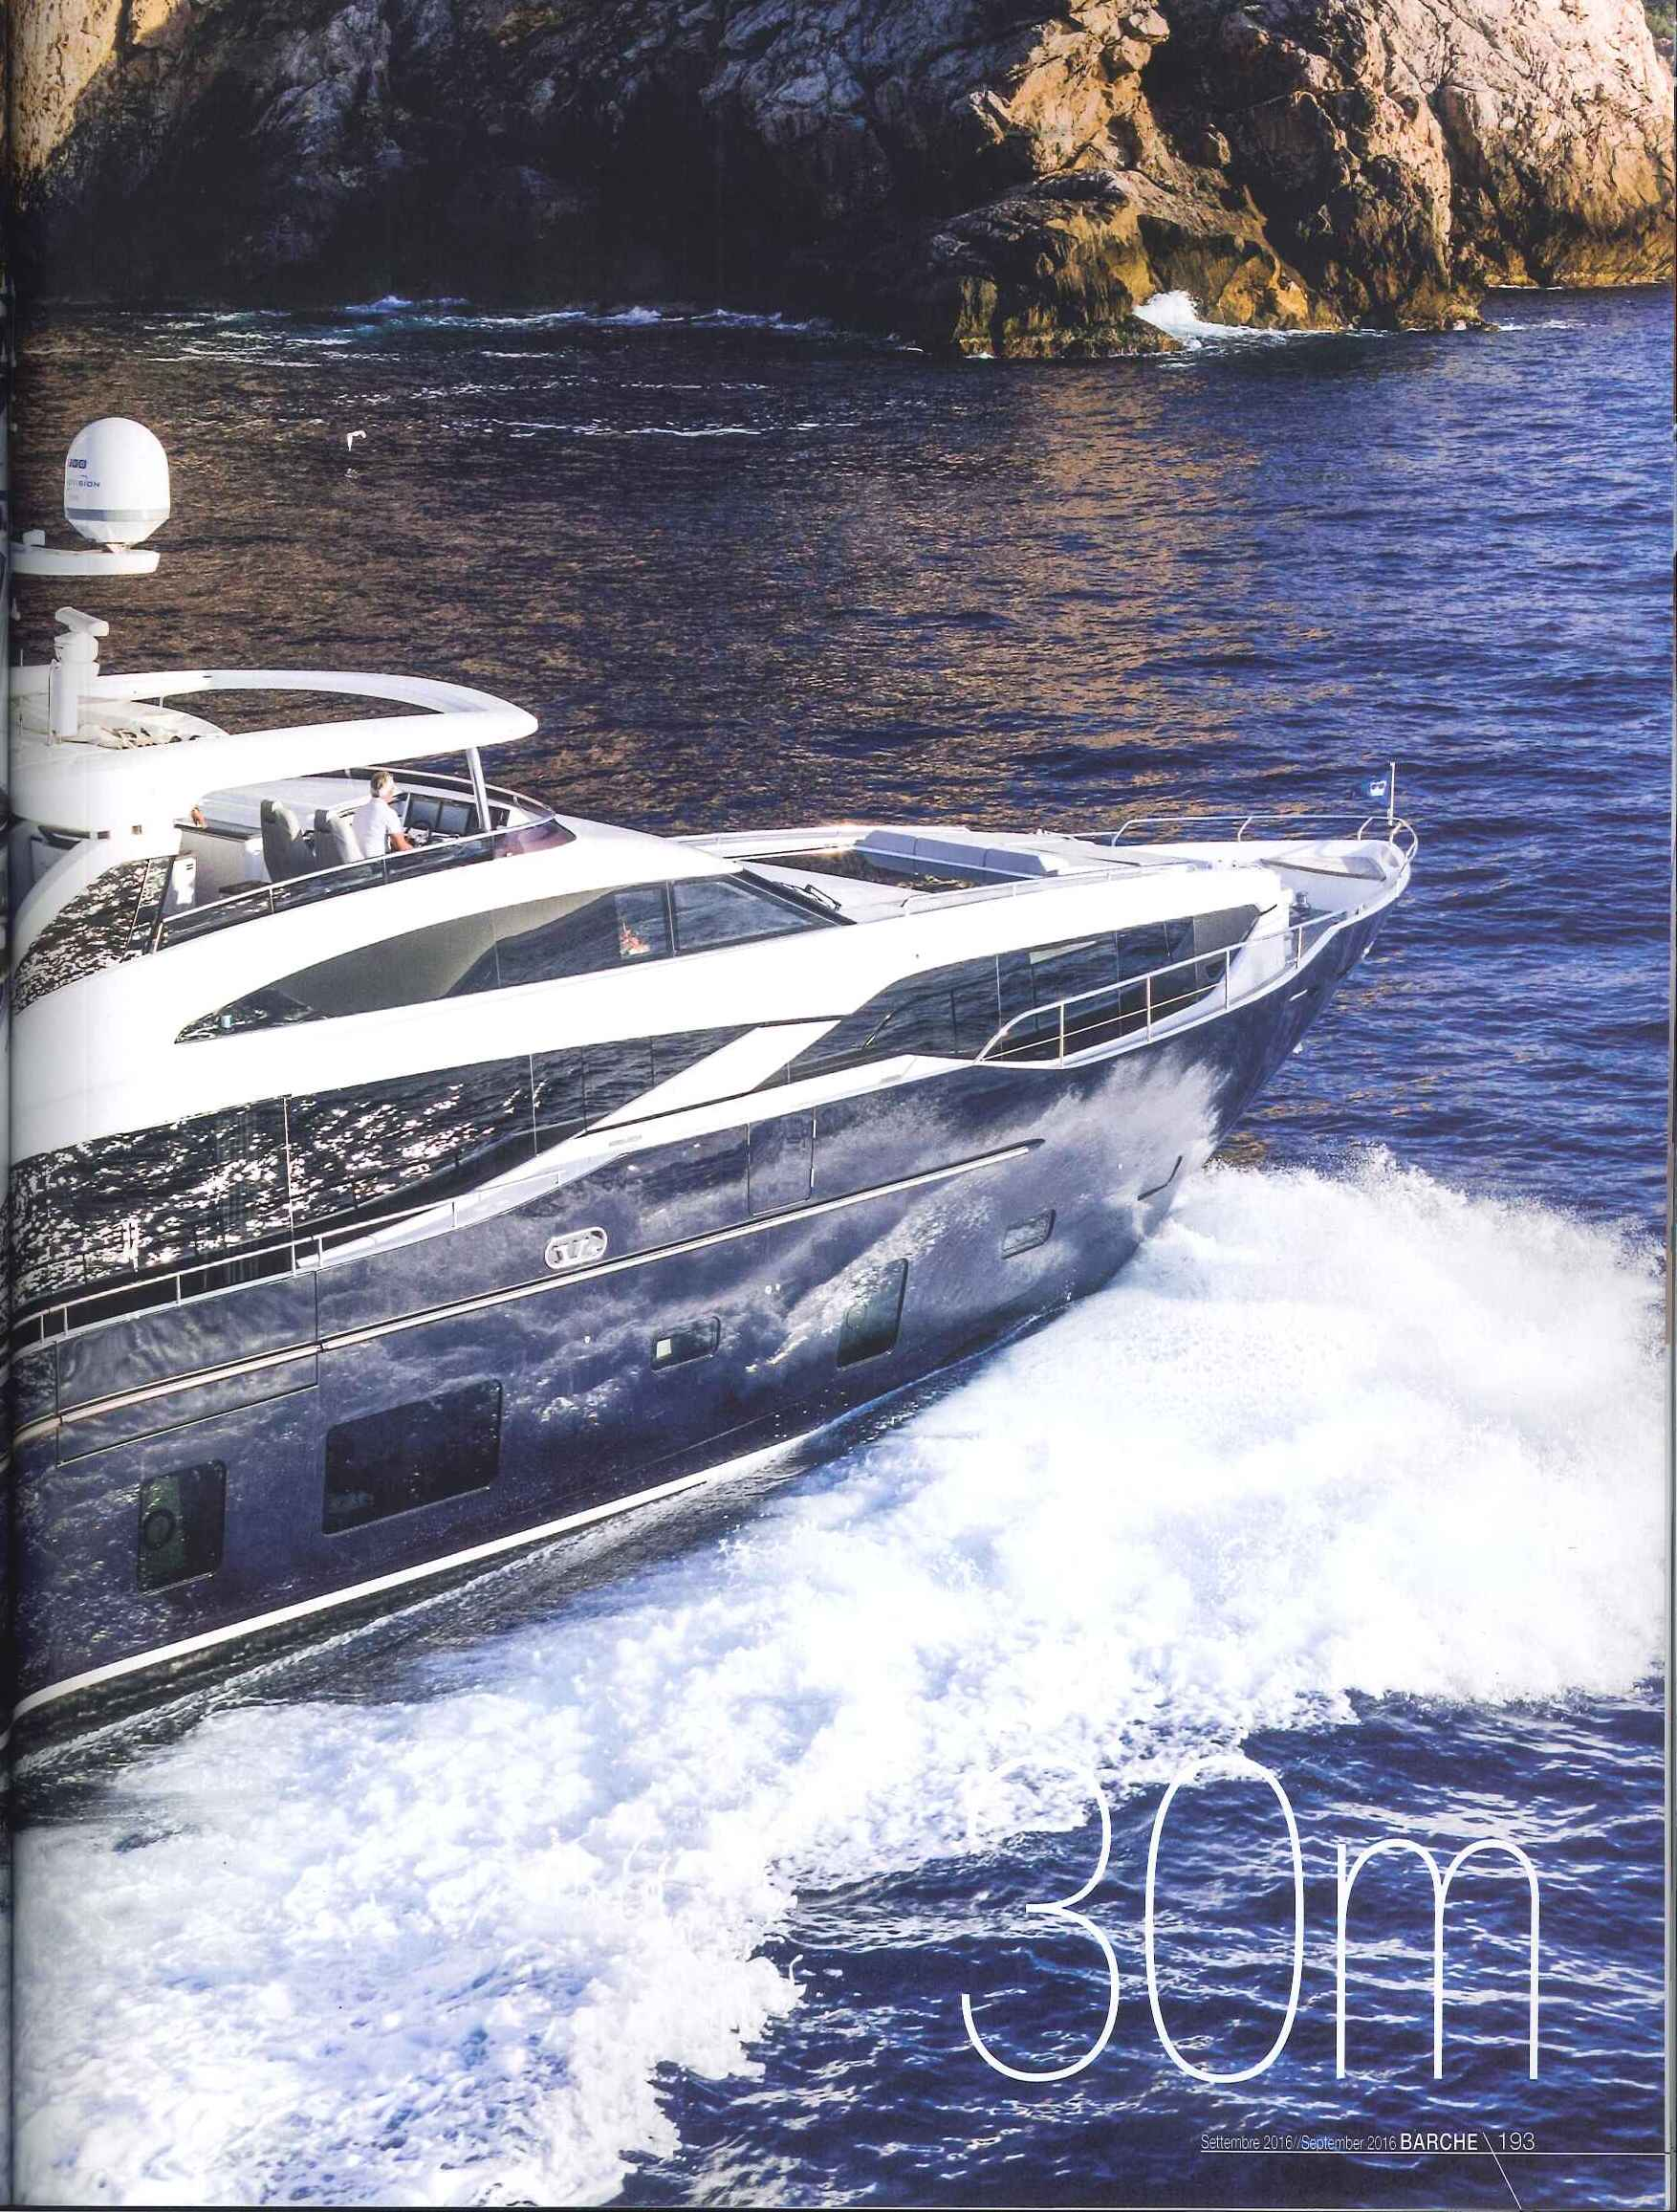 2016 09 PRESS PRINCESS 30M BARCHE (2).jpg